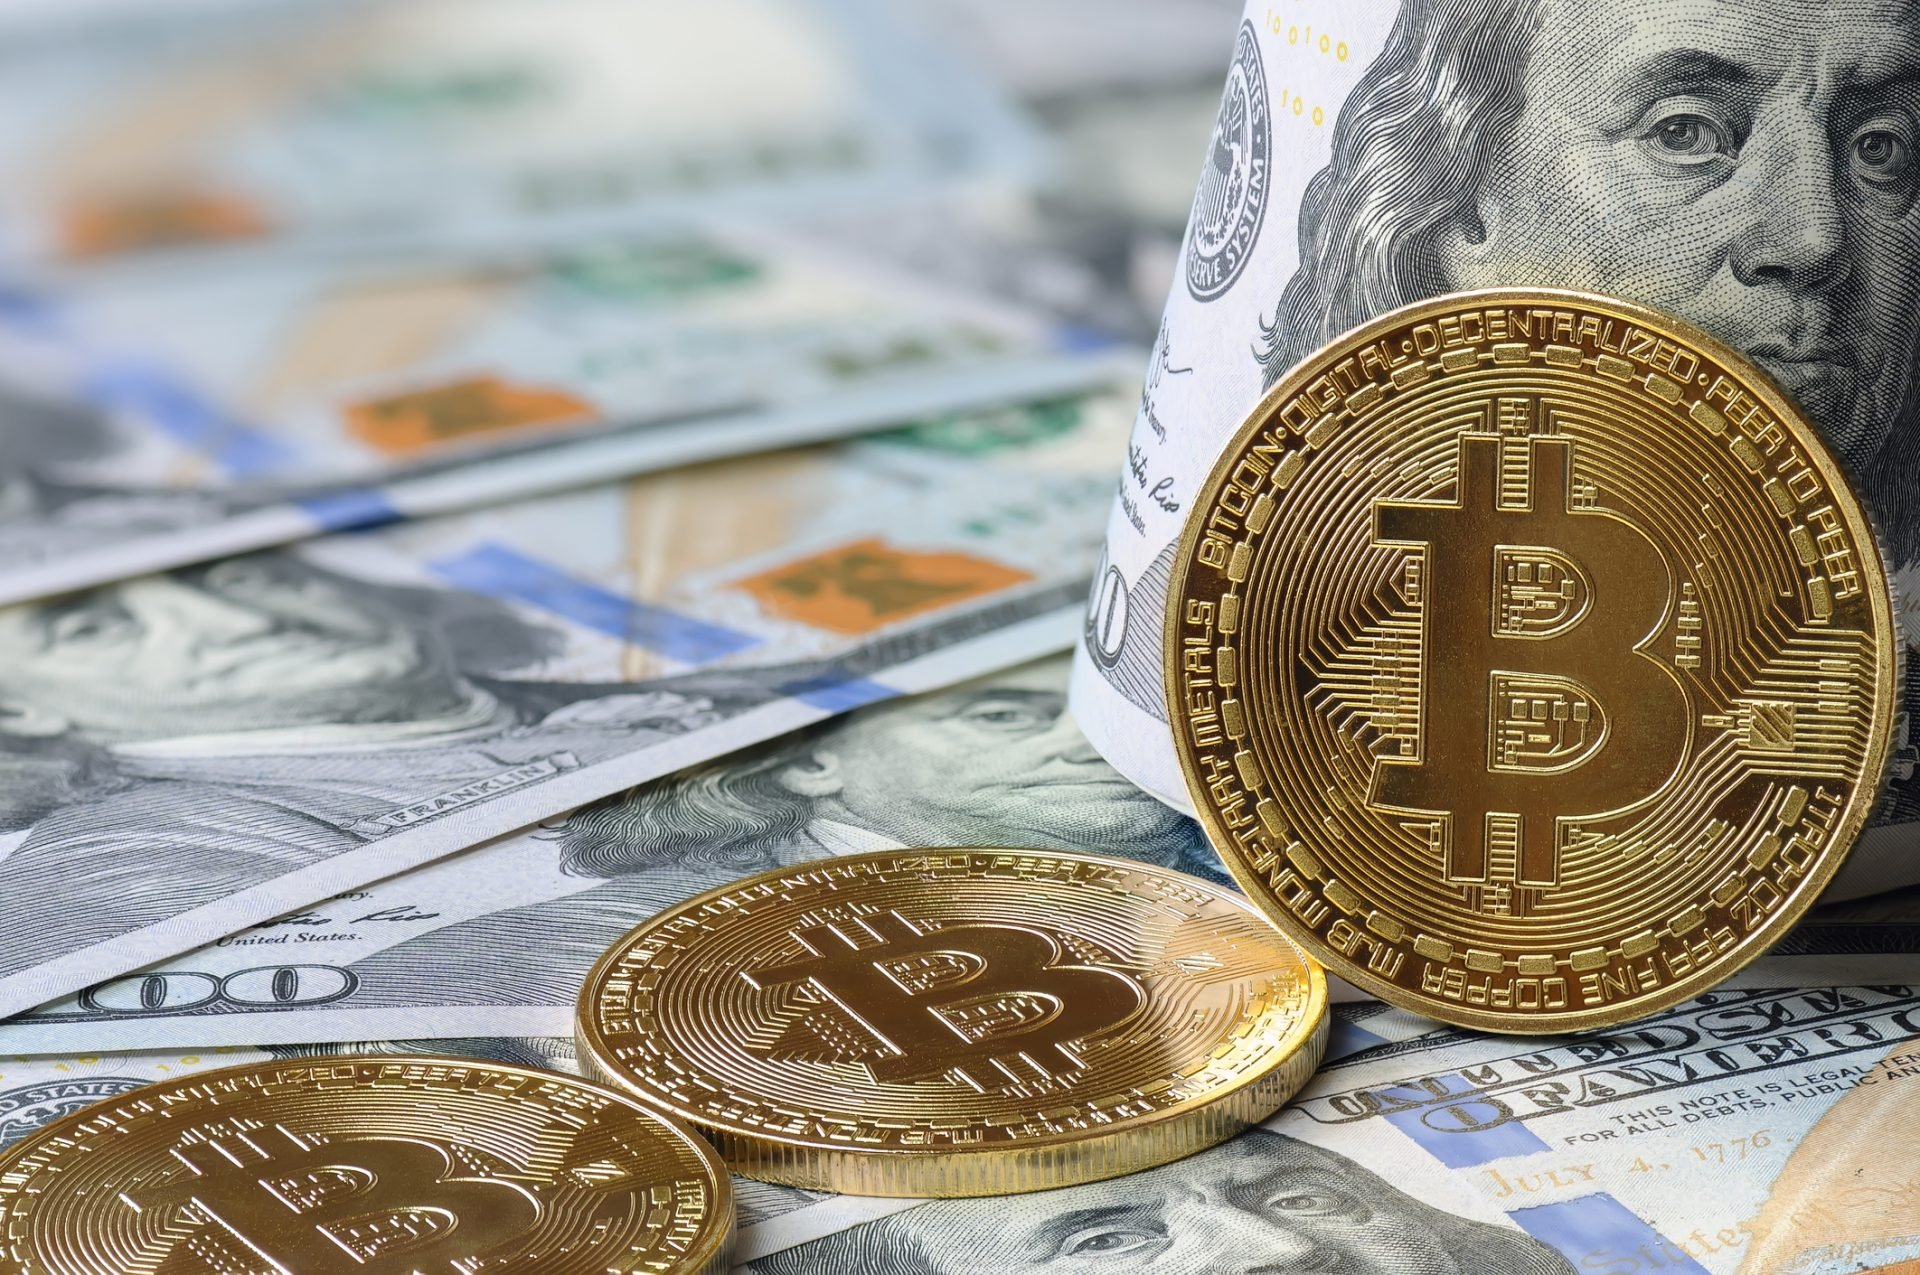 Bitcoin Will Replace Fiat Currency by 2050, Panel of Experts Says